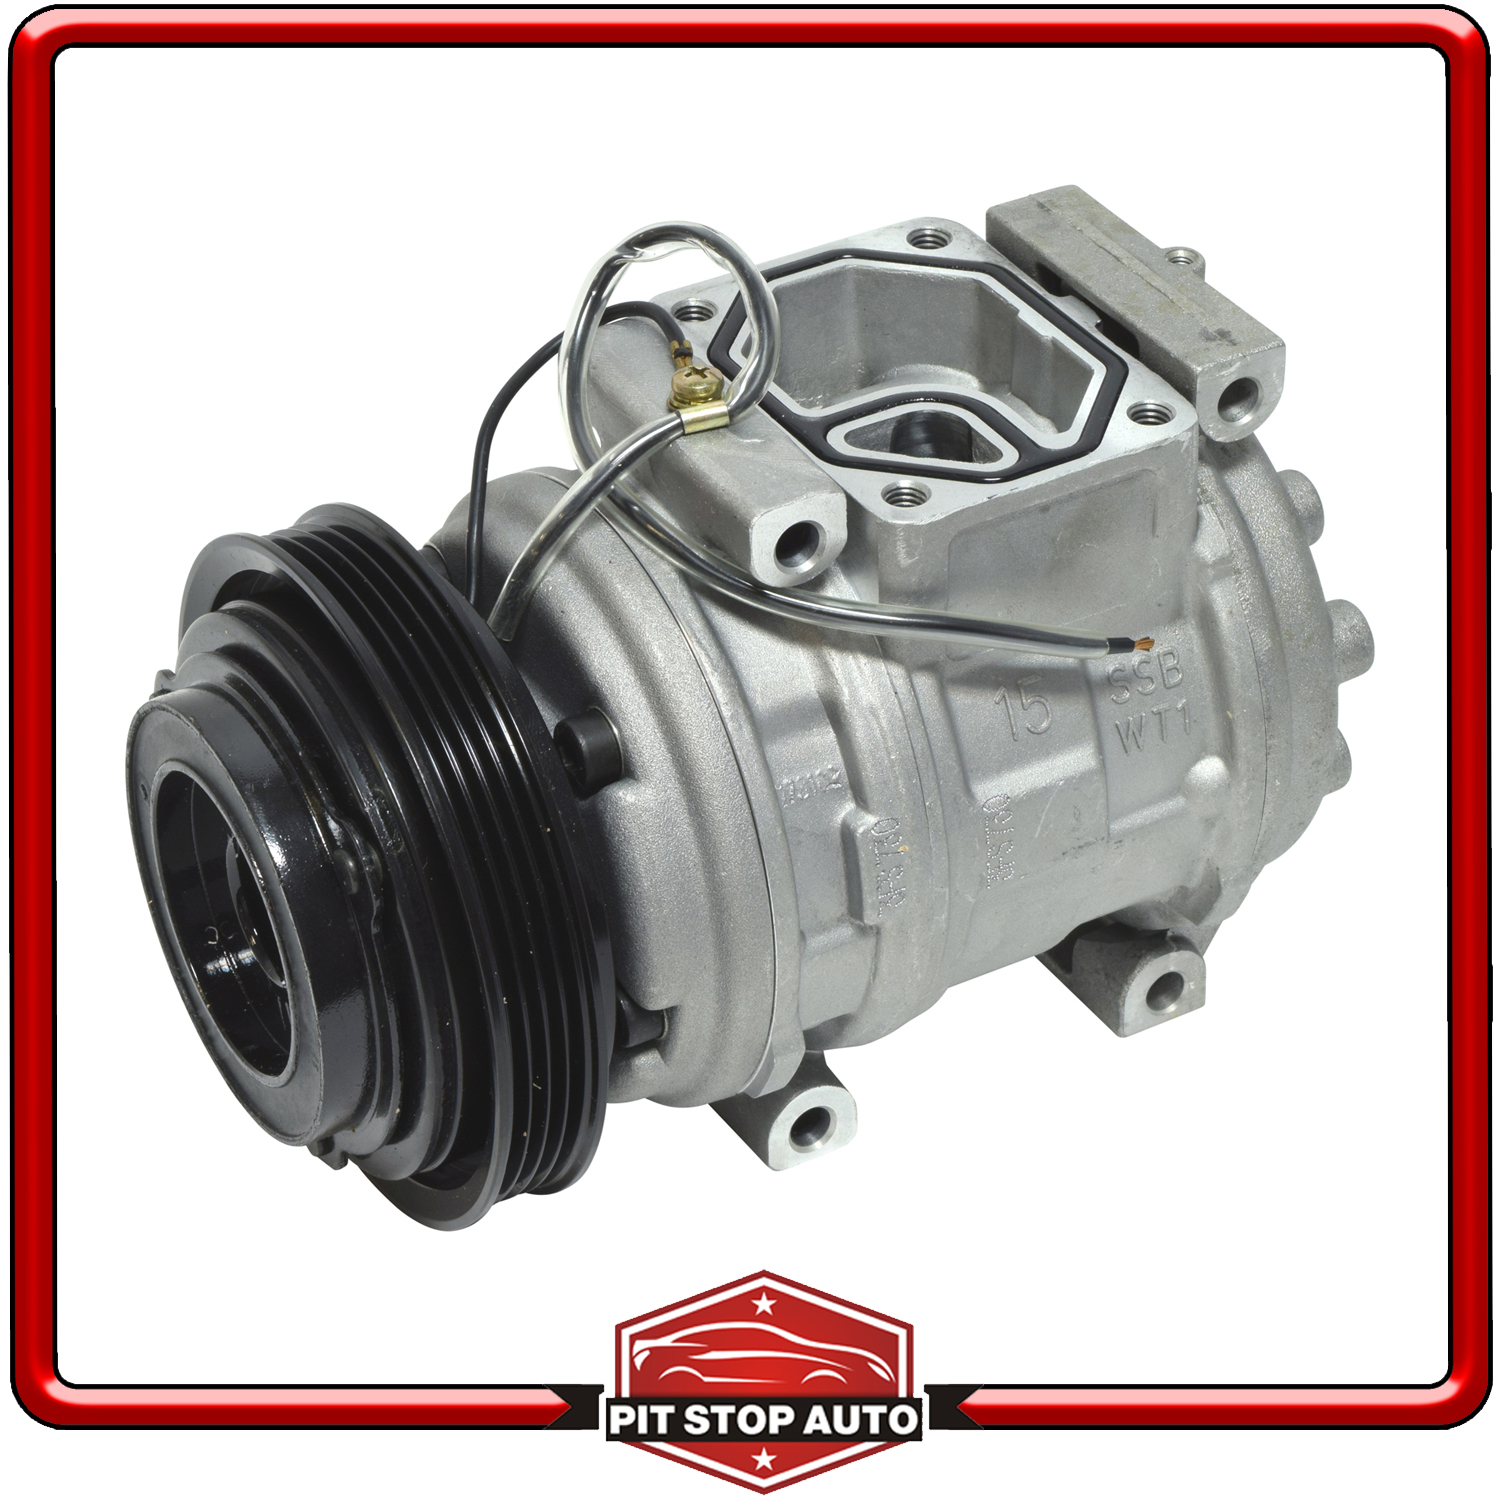 New CO 21011C ( 38800-P2T-0131 ) Acura Integra NSX / Honda